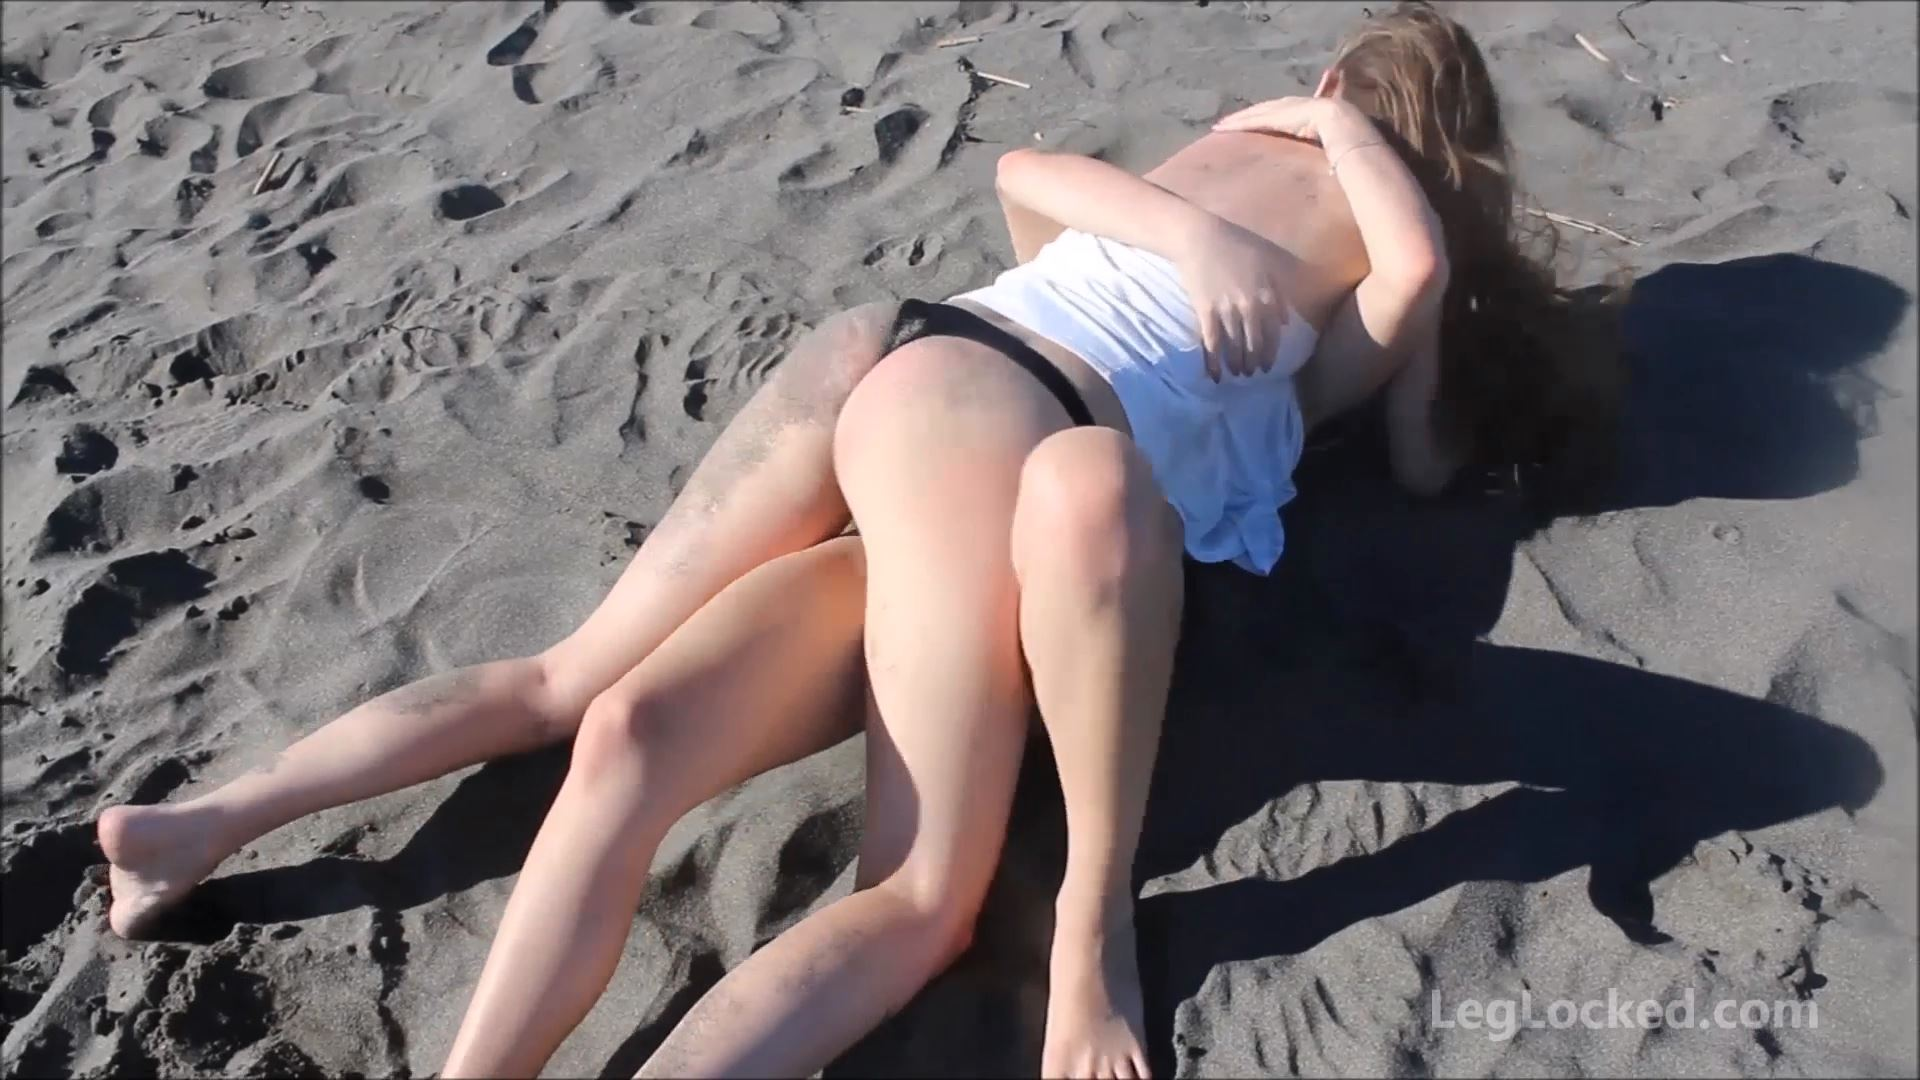 CatBall on the Beach Part 4 - CATBALL CATFIGHT AND SEXFIGHT - FULL HD/1080p/MP4